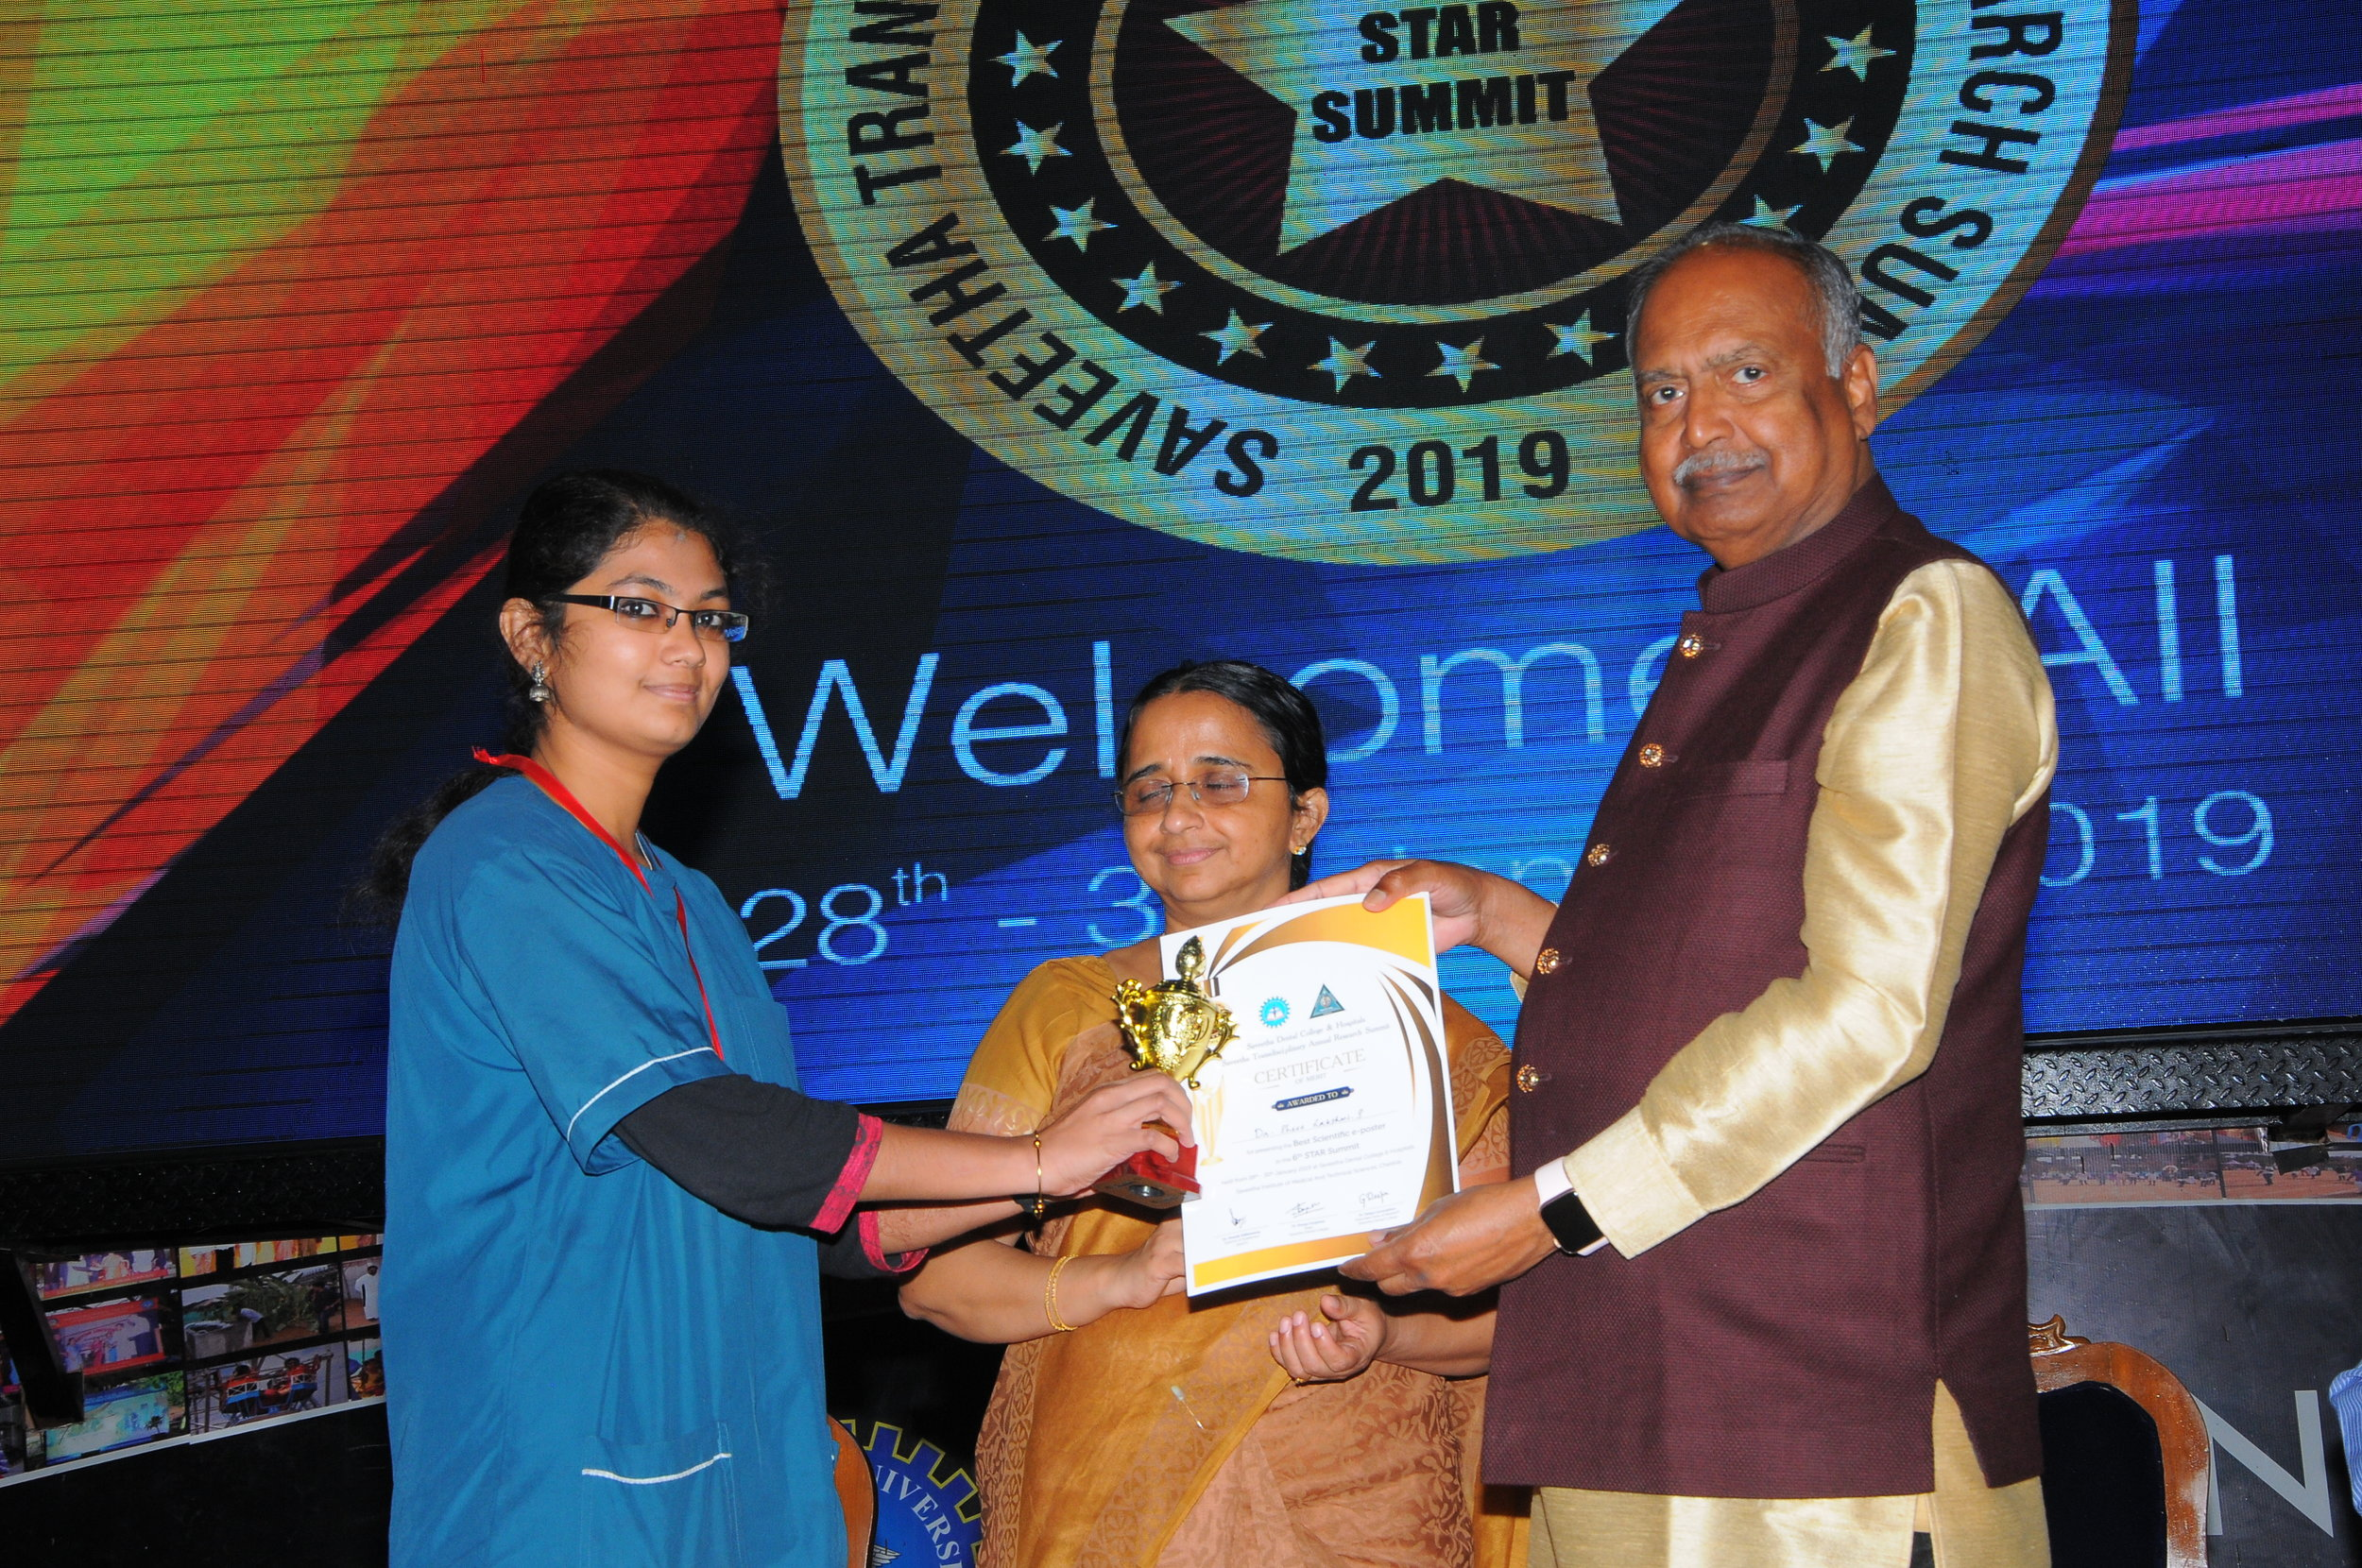 Best Paper - III PlaceDr.Shree Lakshmi - II Yr Post GraduateTitle: Comparison between the effectiveness of pit and fissure sealant and topical fluoride among 6 to 18 year old children, a systematic review